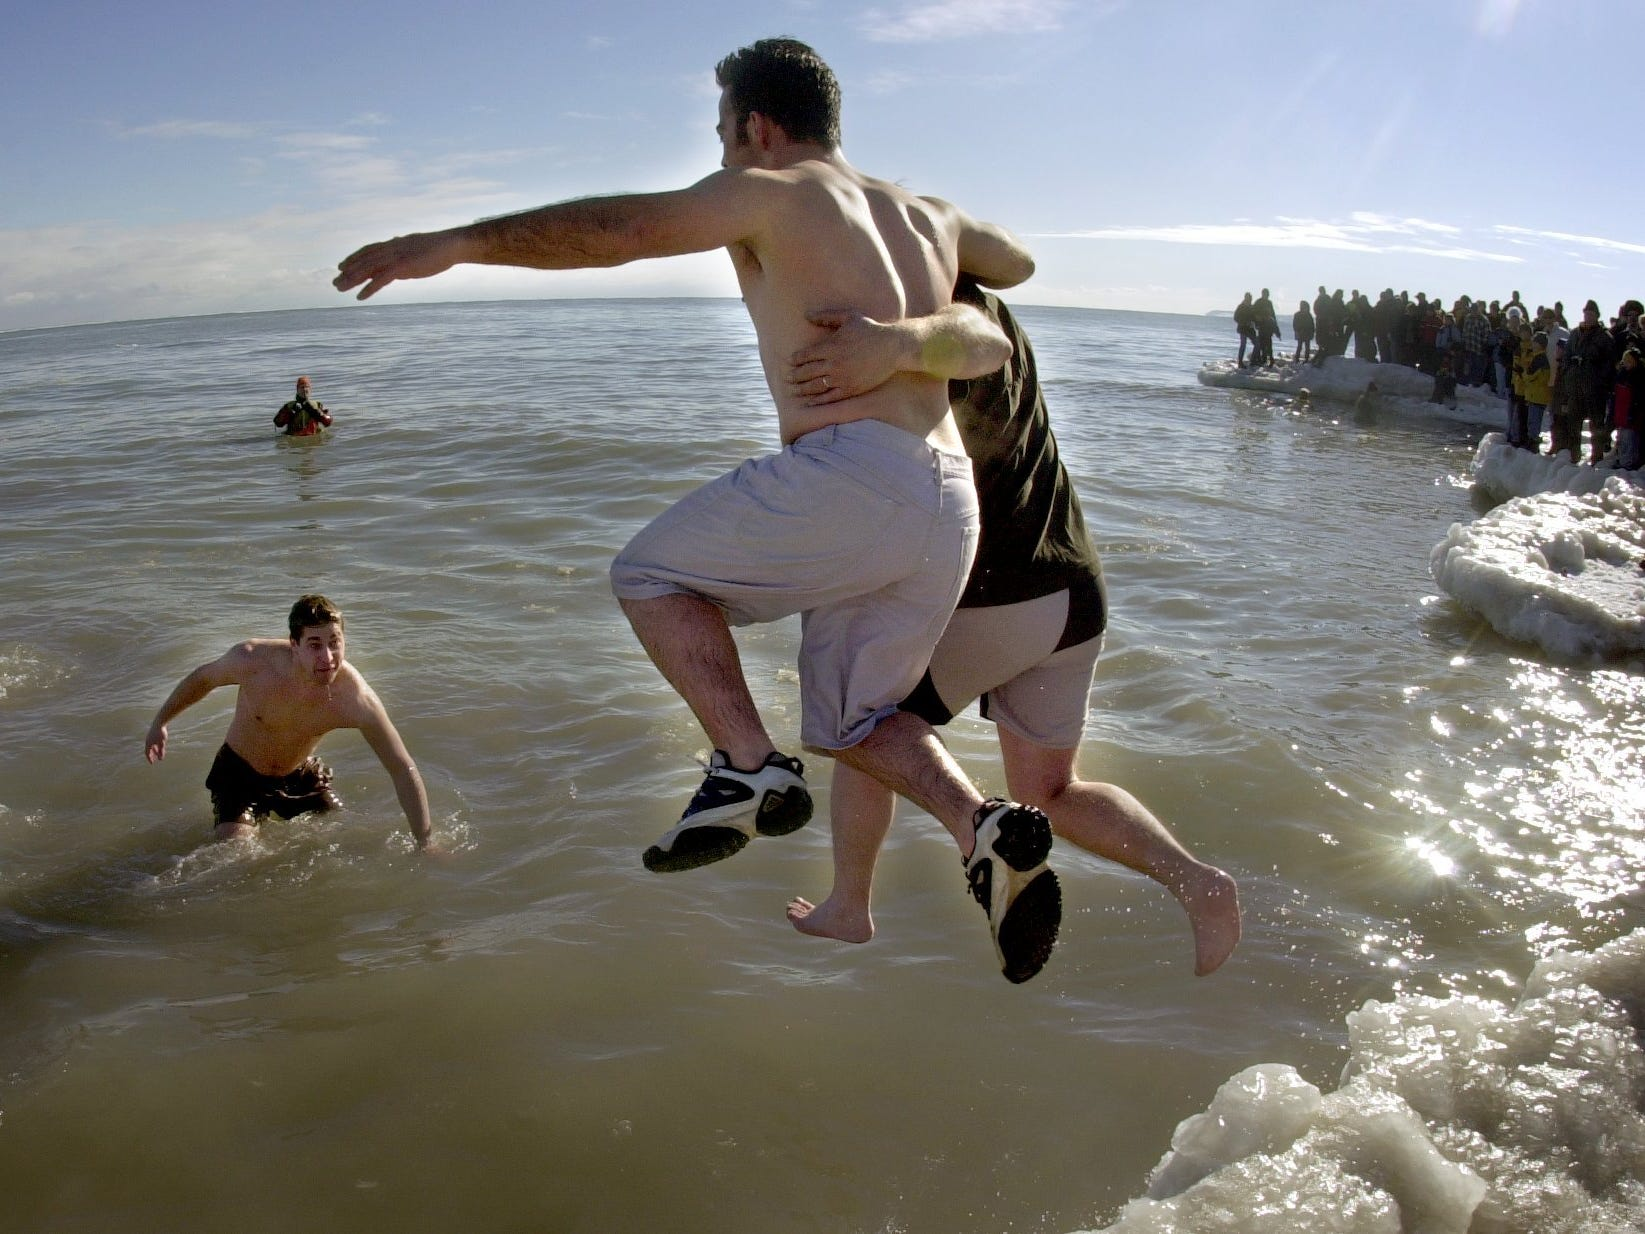 A couple take the leap into Lake Michigan from the ice-covered bank of Bradford Beach during the Polar Bear Plunge on Jan. 1, 2001.